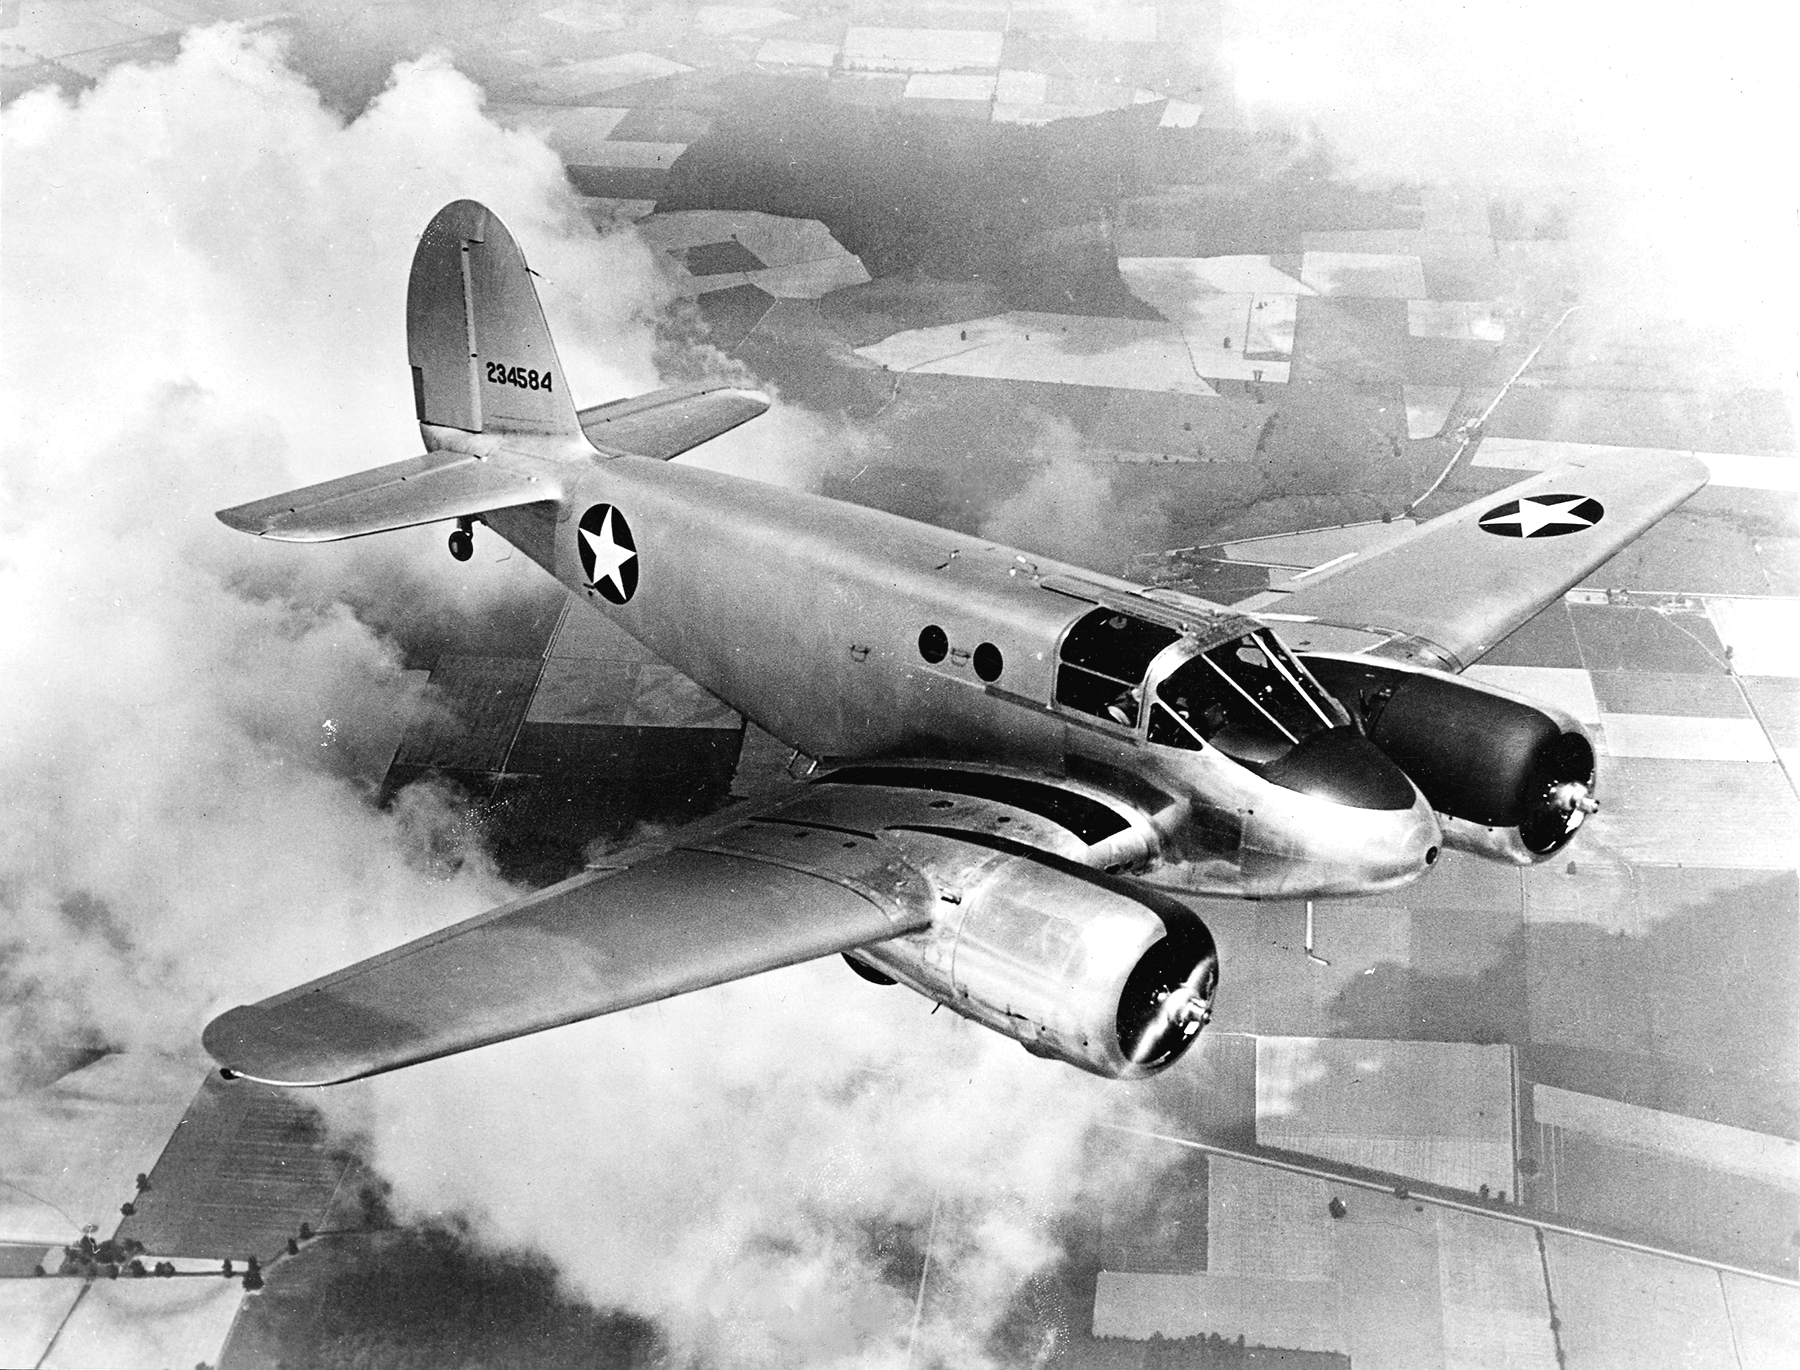 A Beechcraft AT-10 Wichita in flight during WWII. (photo via Wikipedia)